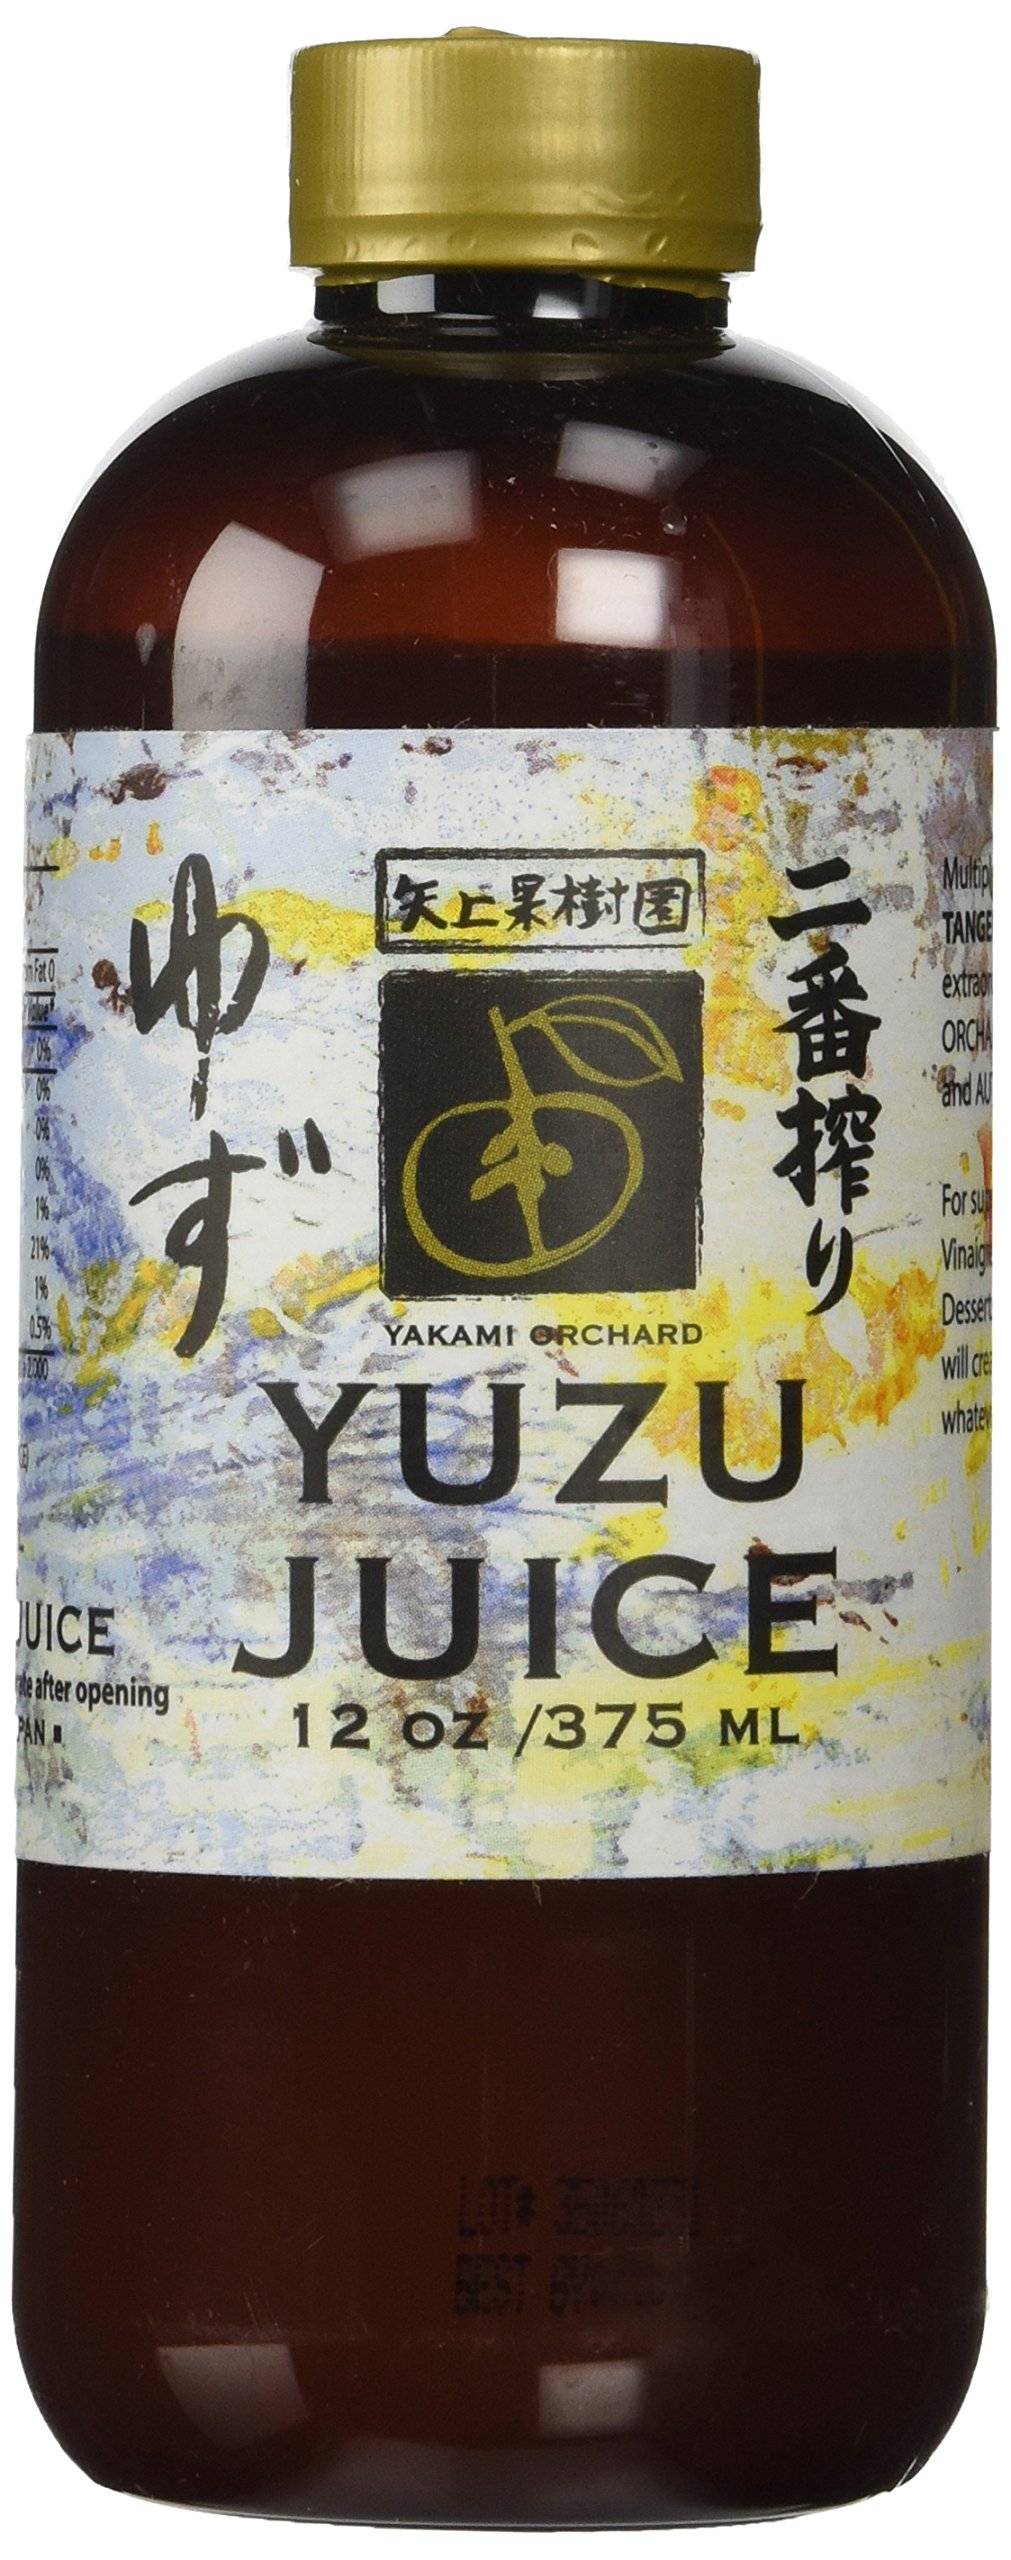 Yakami Orchard 100 % Pure Japanese Yuzu Juice, 12 Ounce